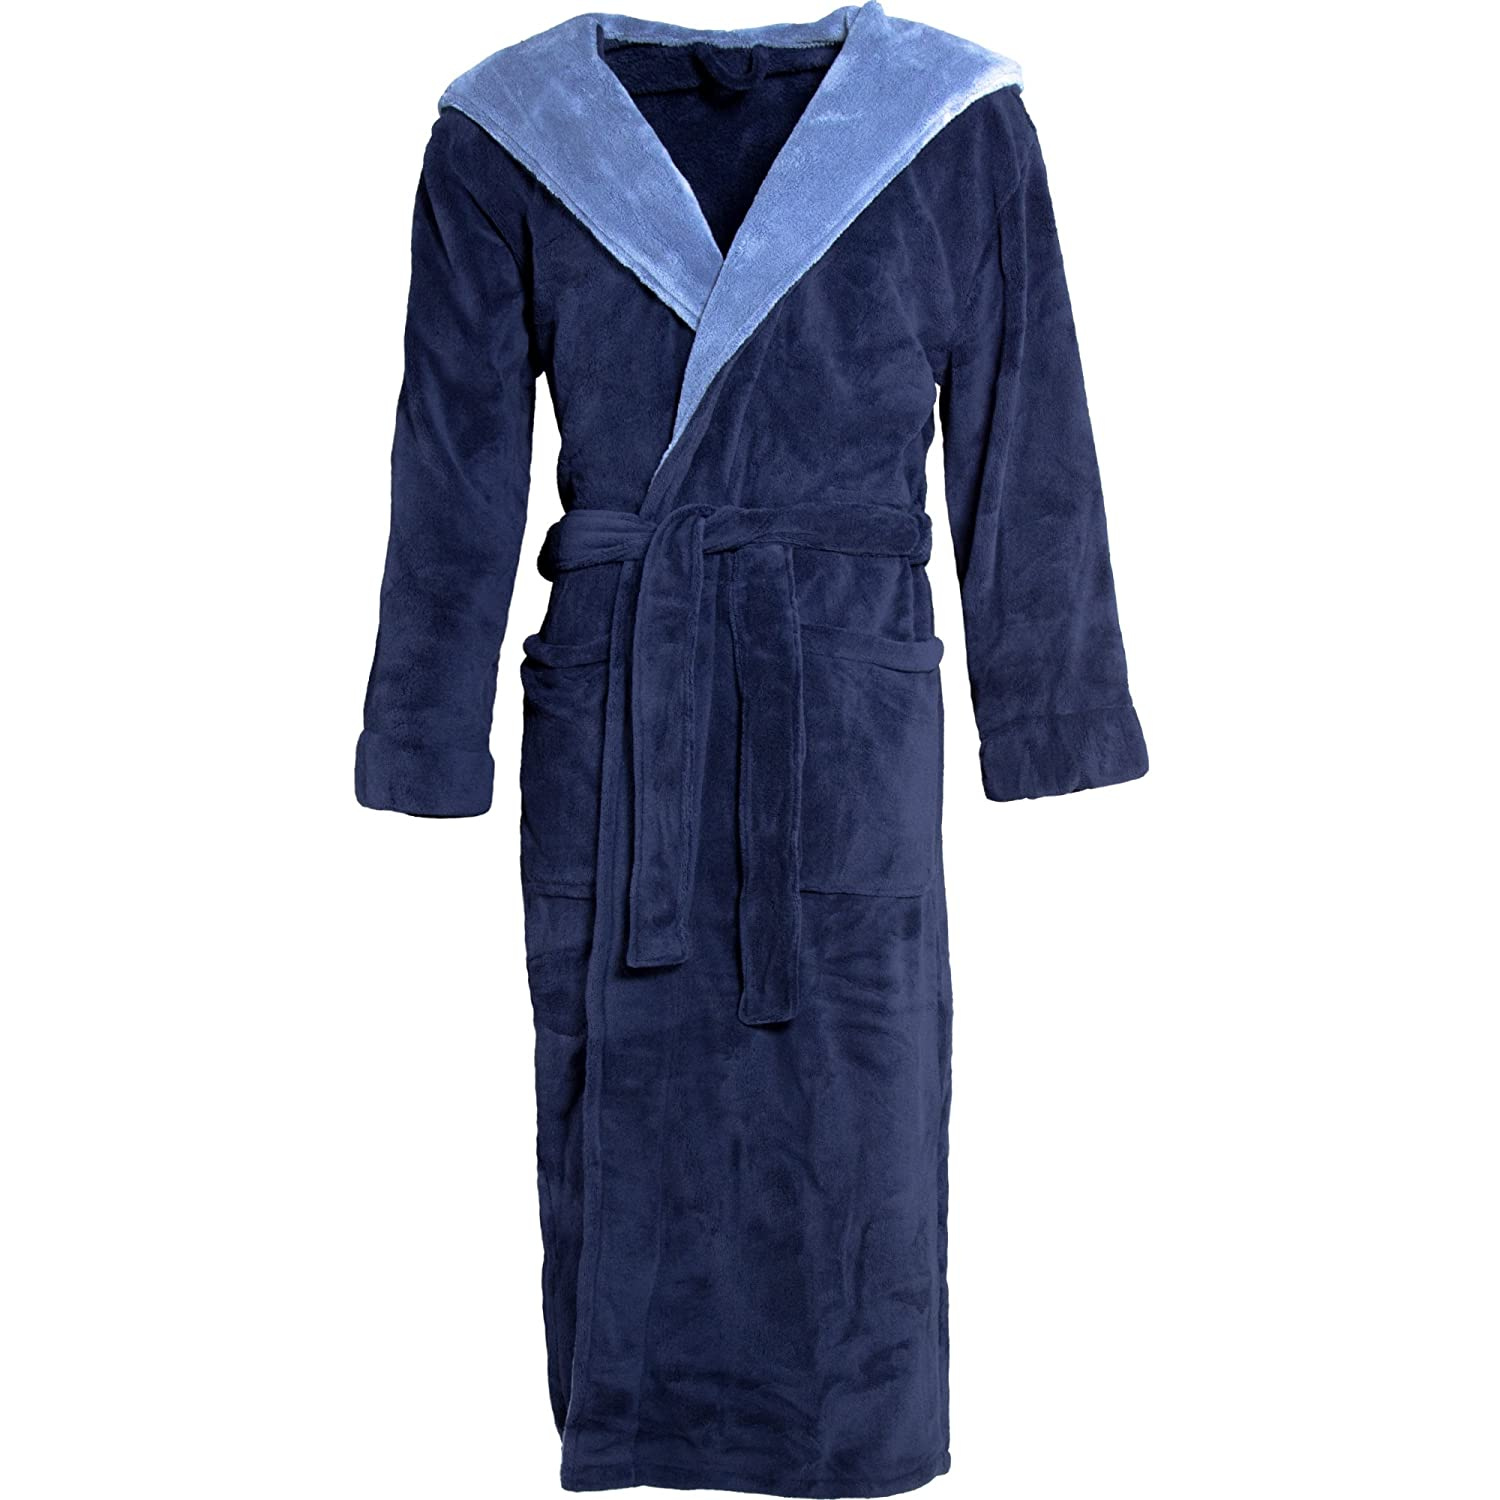 Elegant Hooded Bathrobe for Men and Women | Various Colours | Microfibre Weight approx. 260 g/m² Coral Fleece Dressing Gown Sauna Gown, Celin ATEX 0004360 Texas Beige with Cream , Microfibre, Anthracite Black, Small Celinatex 4372